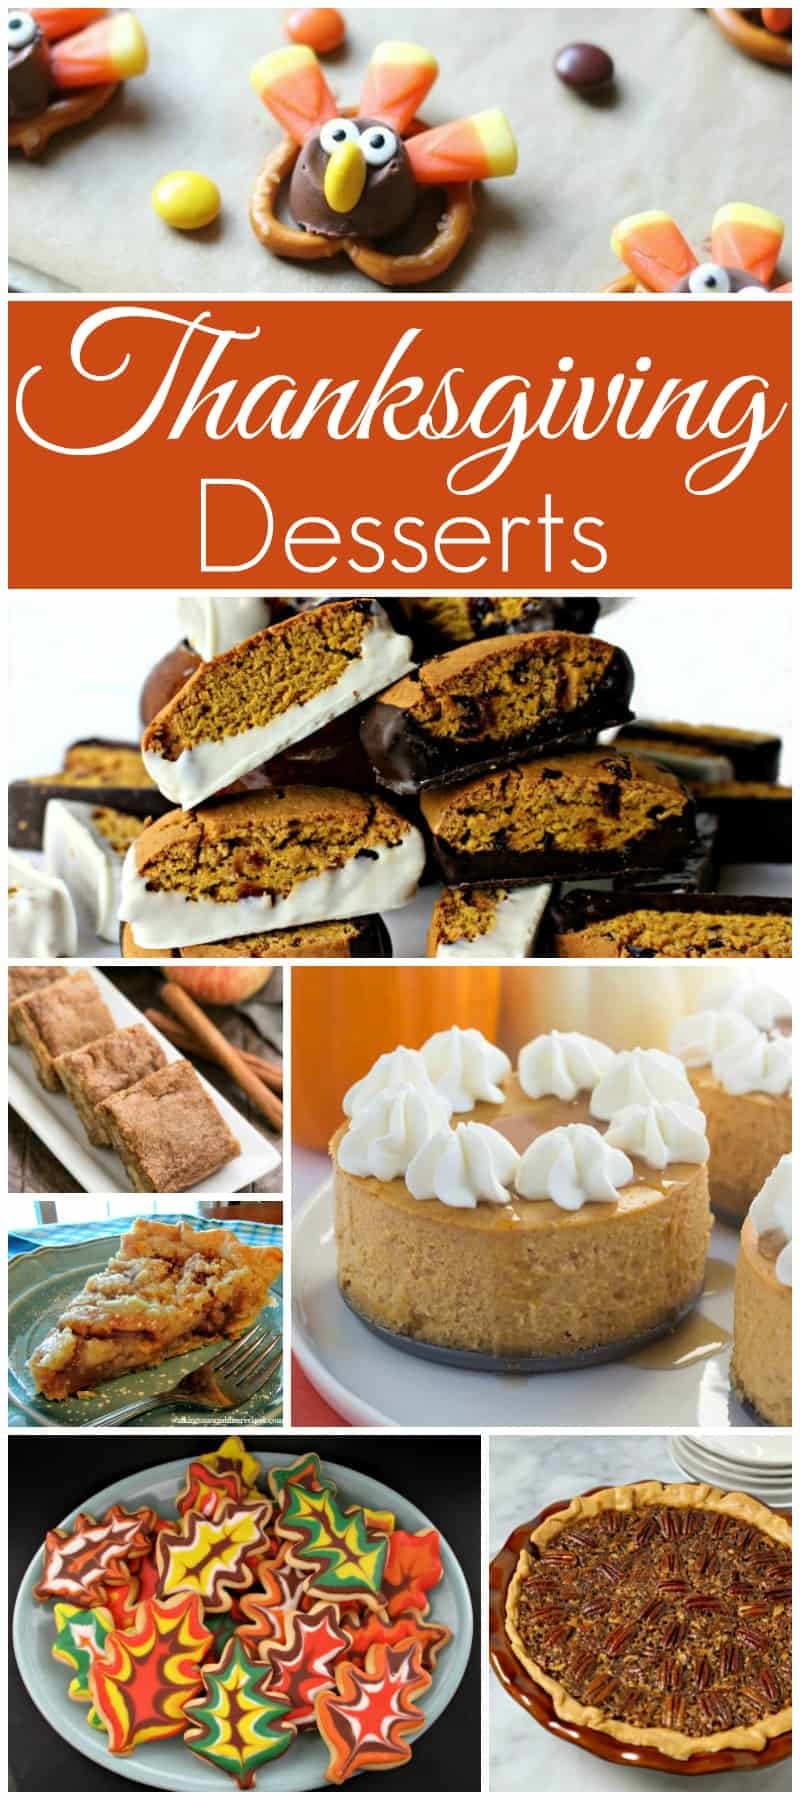 Thanksgiving Recipes Desserts  Thanksgiving Desserts and our Delicious Dishes Recipe Party